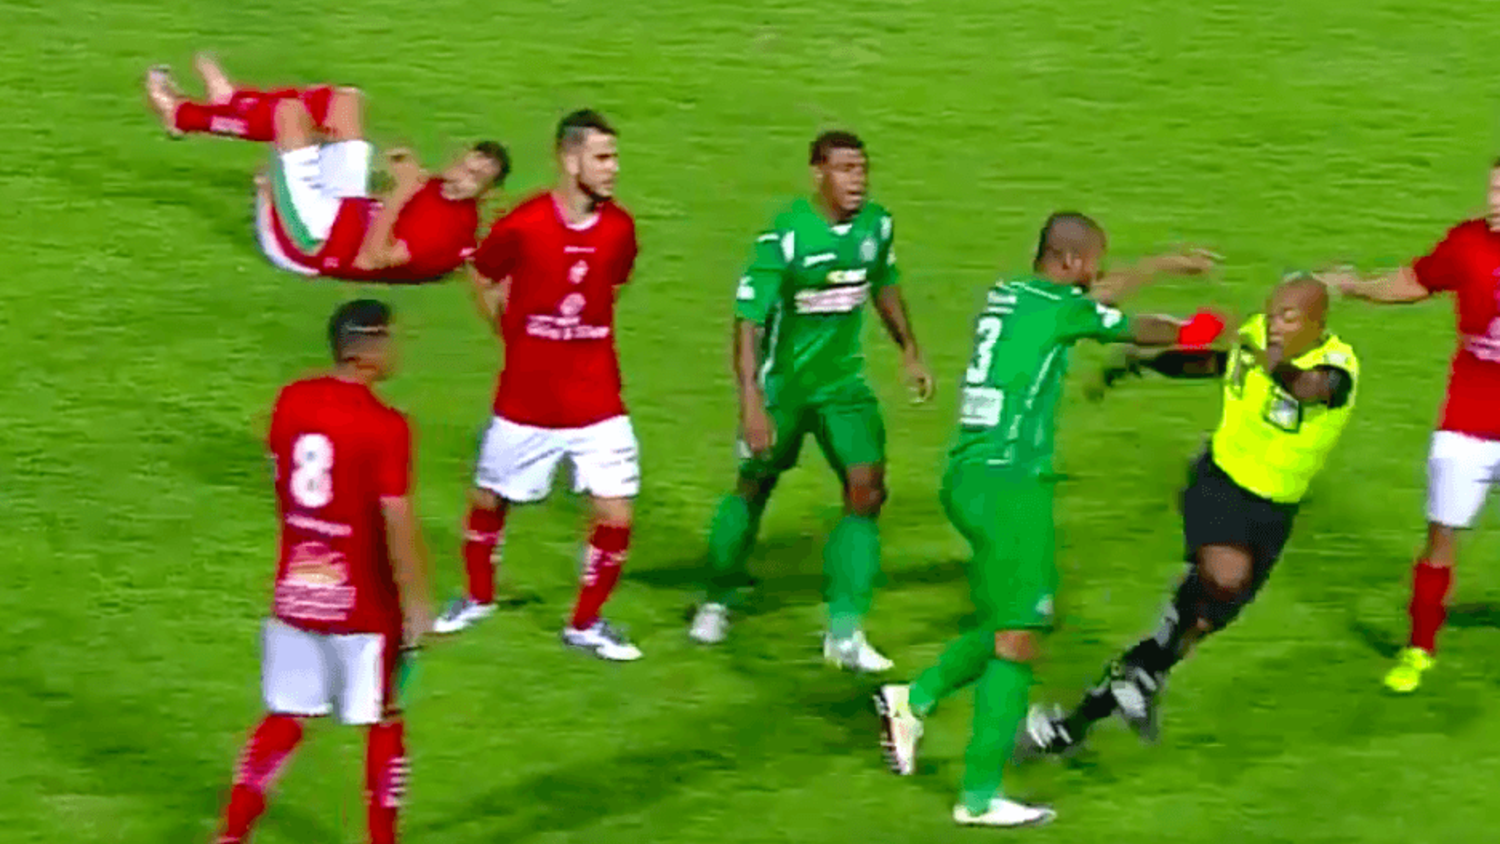 Brazilian player goes mental, pushes referee and teammate after red card